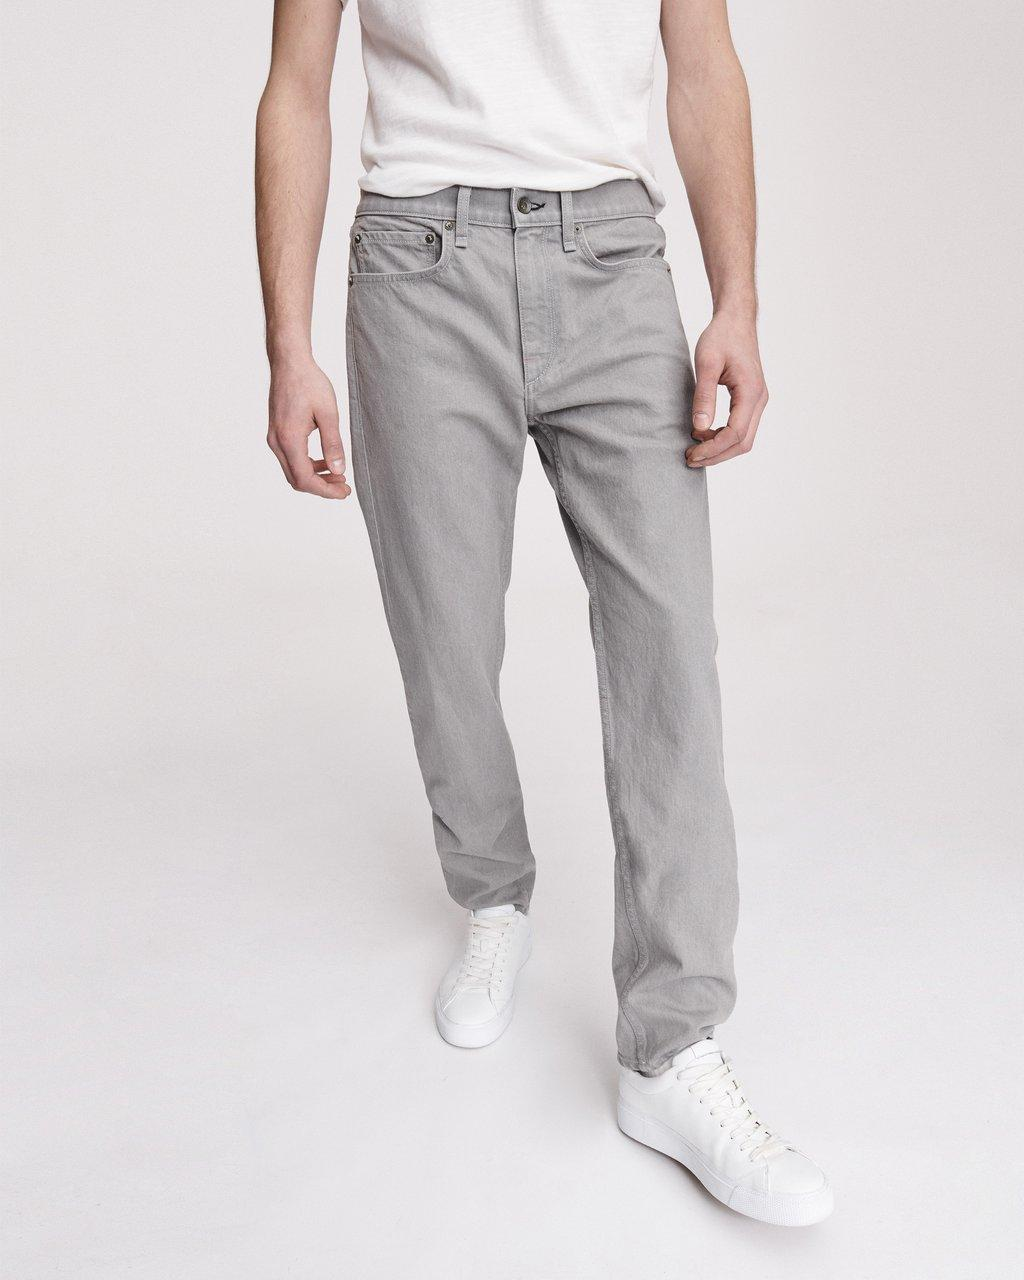 FIT 2 IN LIGHT GREY - 30 INCH INSEAM AVAILABLE